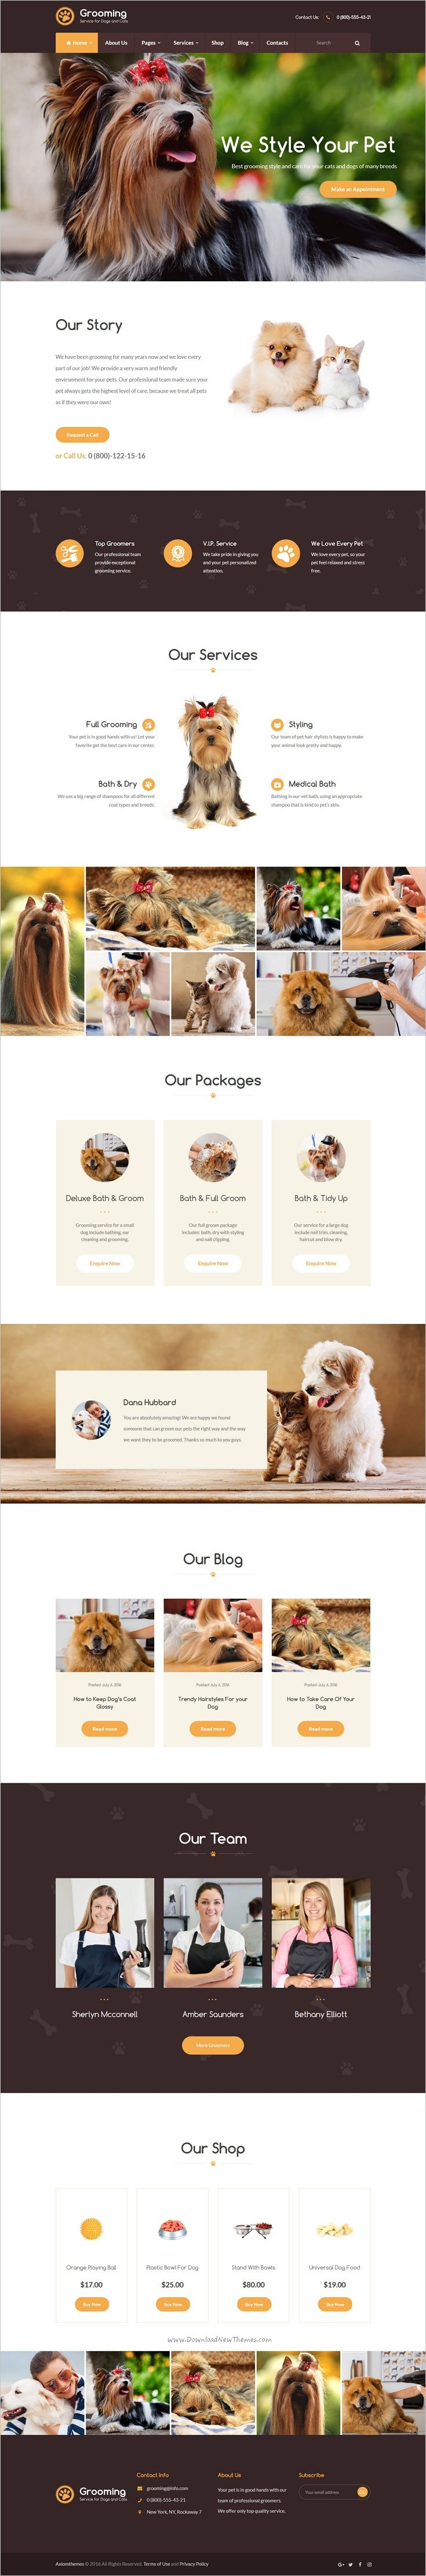 Pet grooming is modern and functional responsive #WordPress theme for #pet grooming salon, pet shop, #veterinary clinic, #animal training classes, animal shelters website download now➩ https://themeforest.net/item/pet-grooming-pet-shop-veterinary-theme/18806505?ref=Datasata